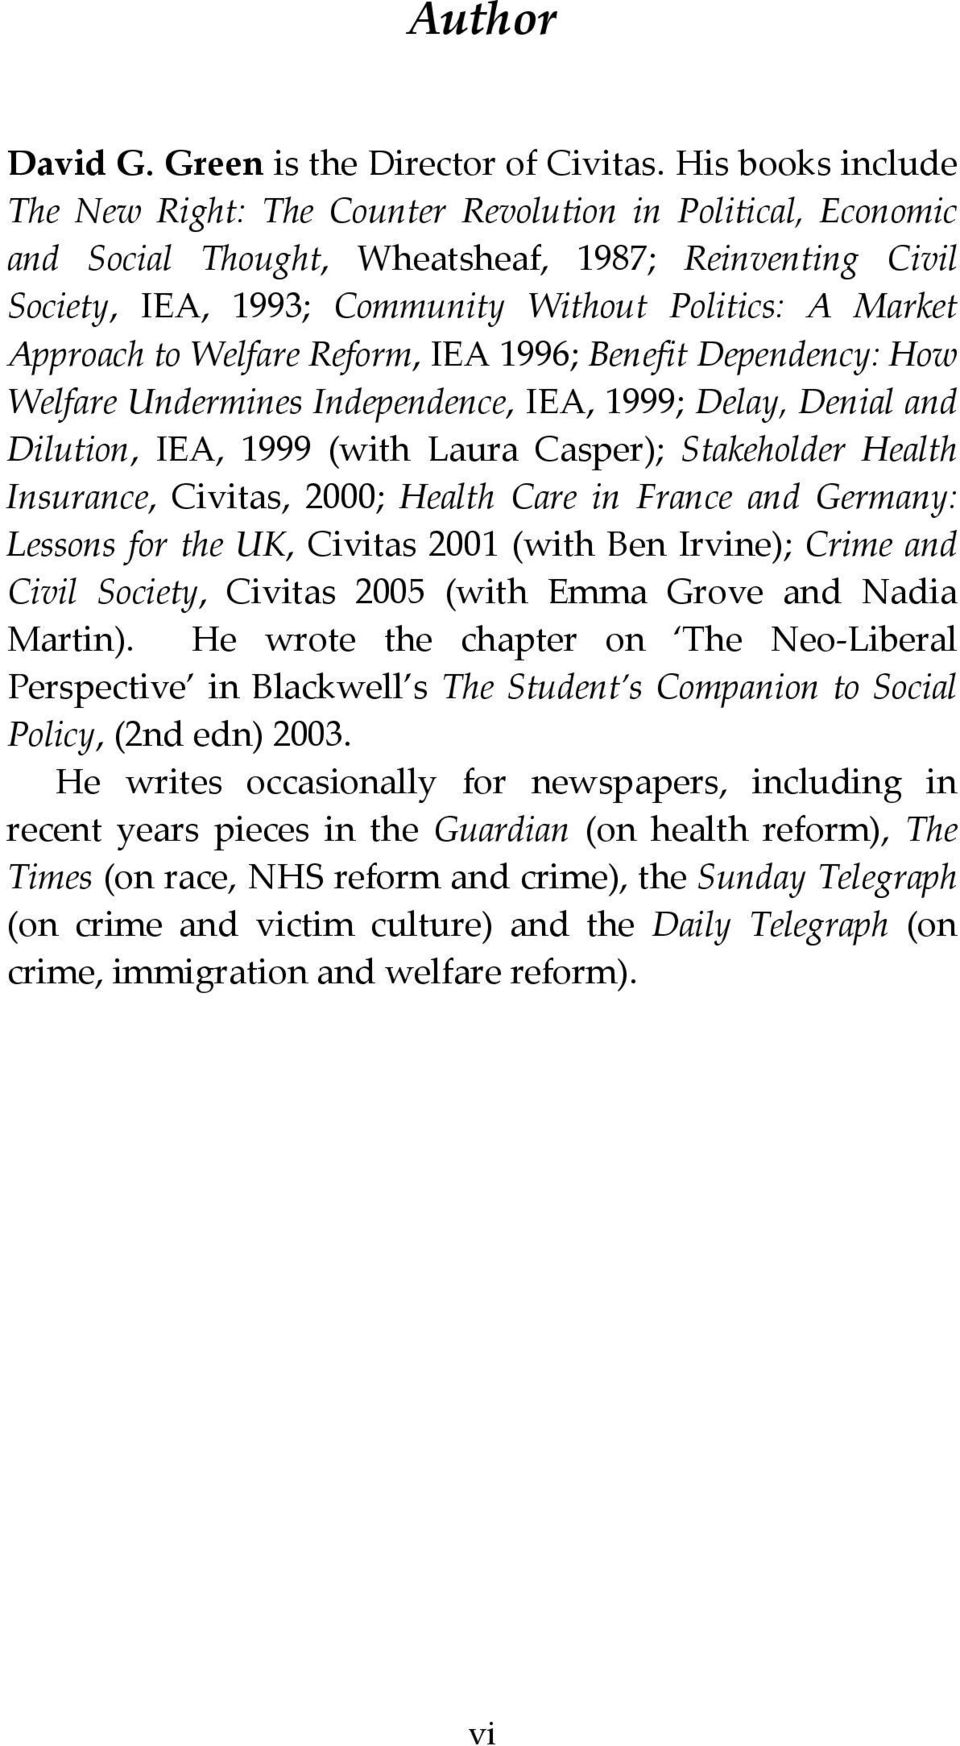 Approach to Welfare Reform, IEA 1996; Benefit Dependency: How Welfare Undermines Independence, IEA, 1999; Delay, Denial and Dilution, IEA, 1999 (with Laura Casper); Stakeholder Health Insurance,